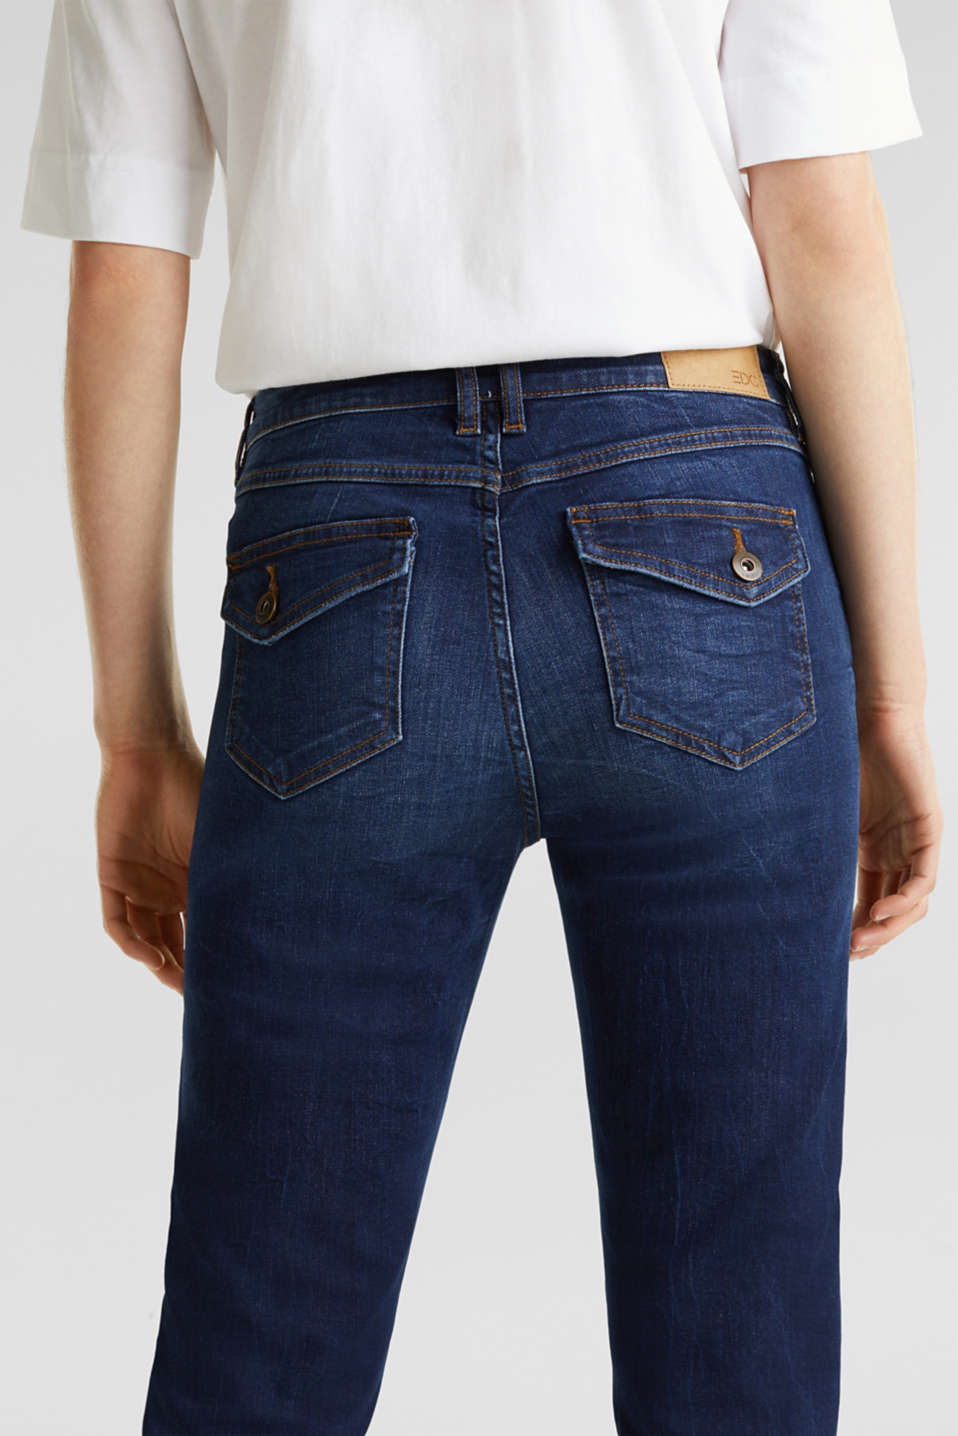 Stretch jeans with button-fastening flap pockets, BLUE DARK WASH, detail image number 5